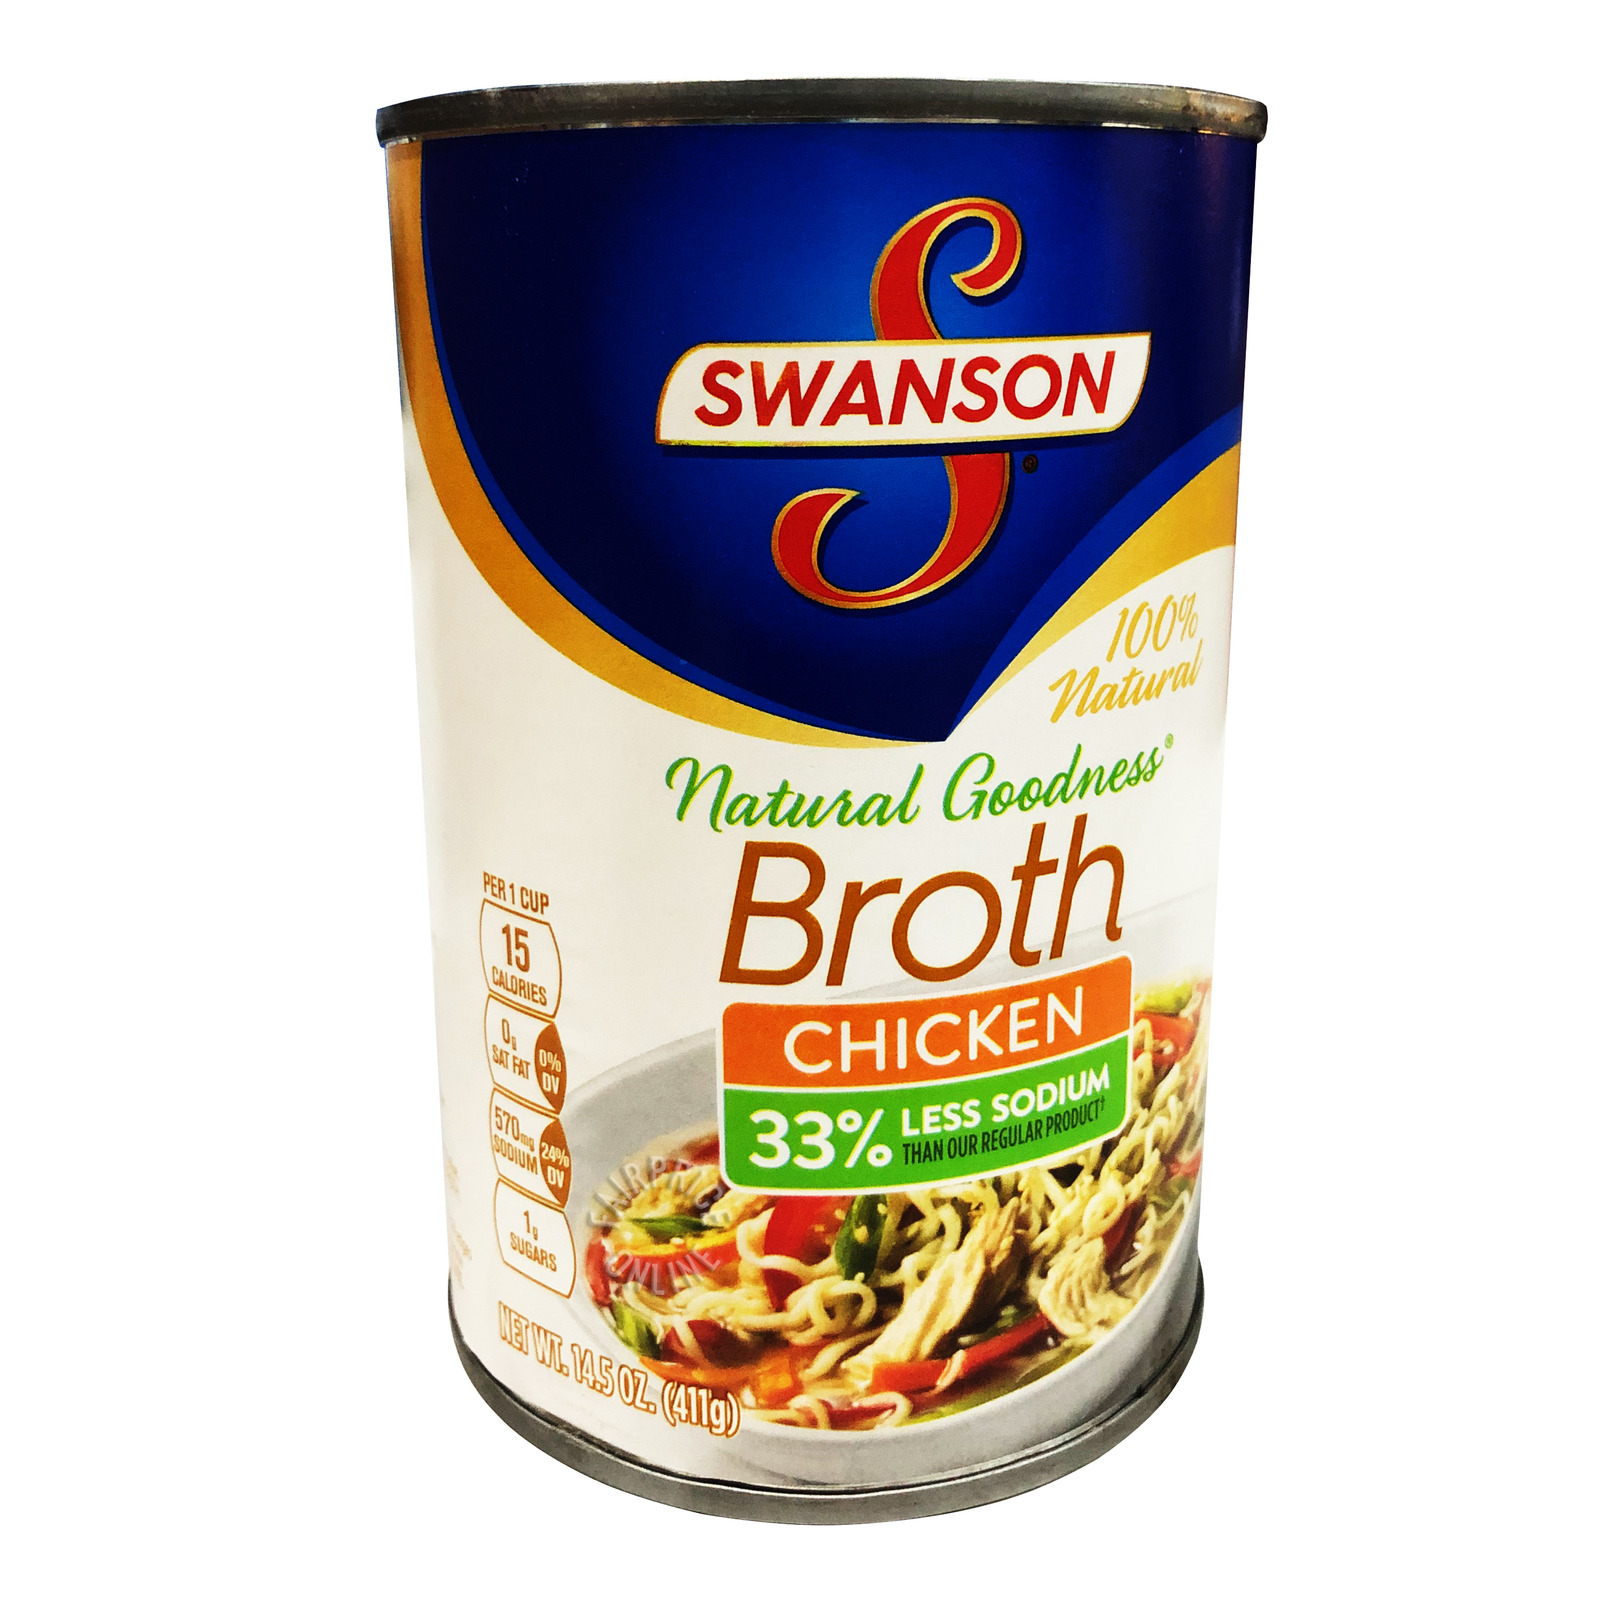 Swanson 100% Fat Free Chicken Broth Can - Less Sodium (No MSG)